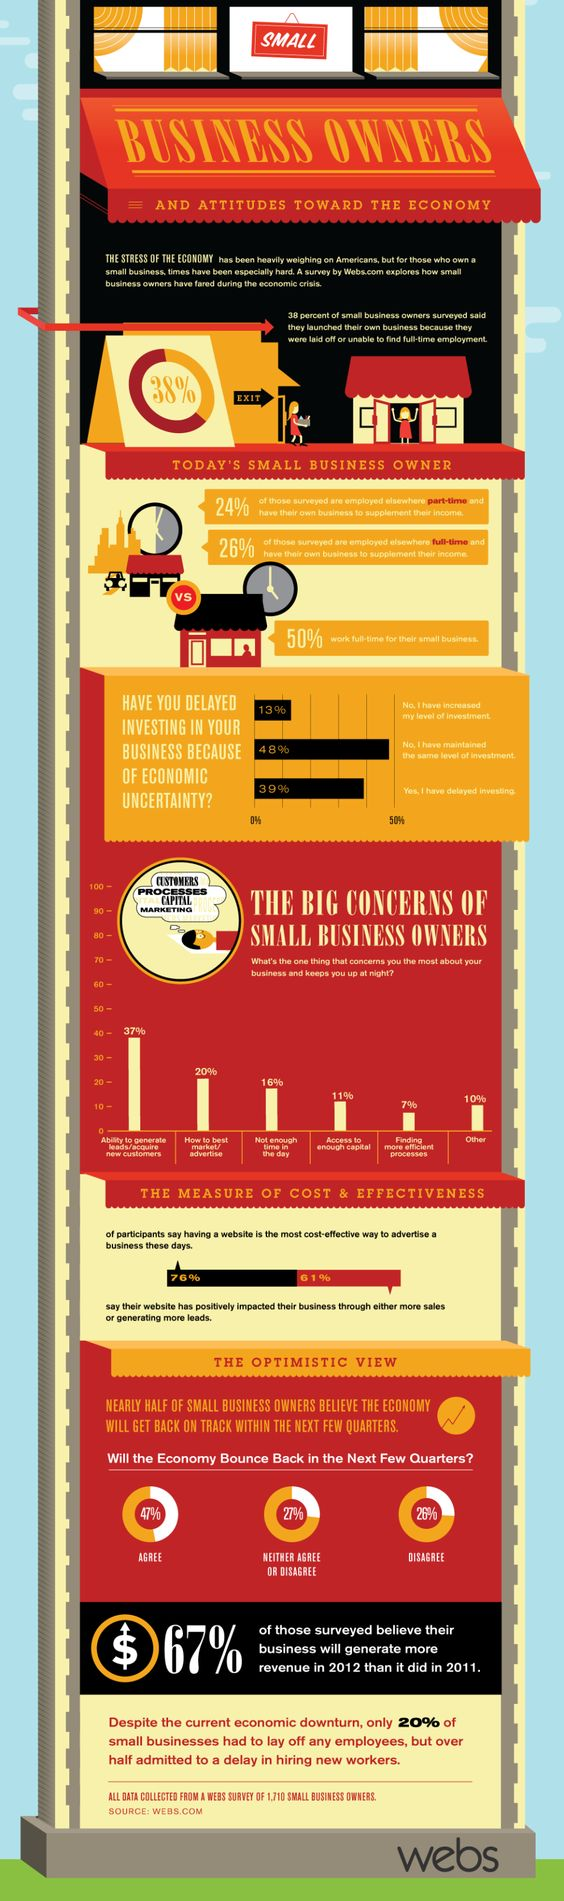 Info graphic about small business owners and the economy